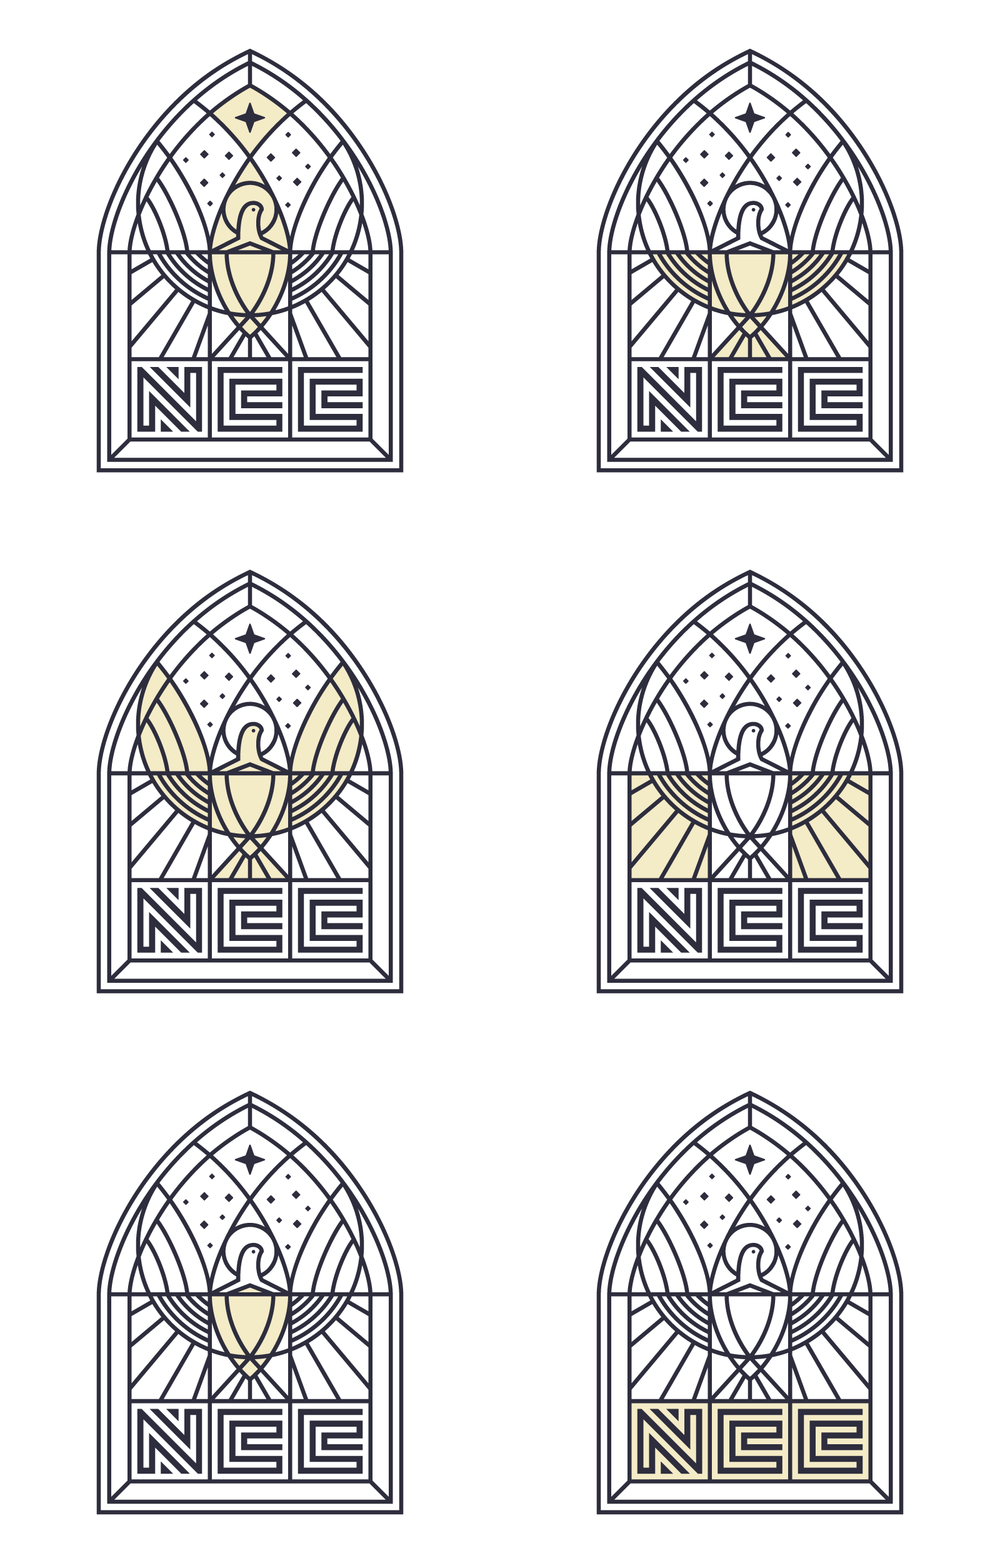 Various Christian symbolism to reflect the overall identity captured within one  cohesive design.